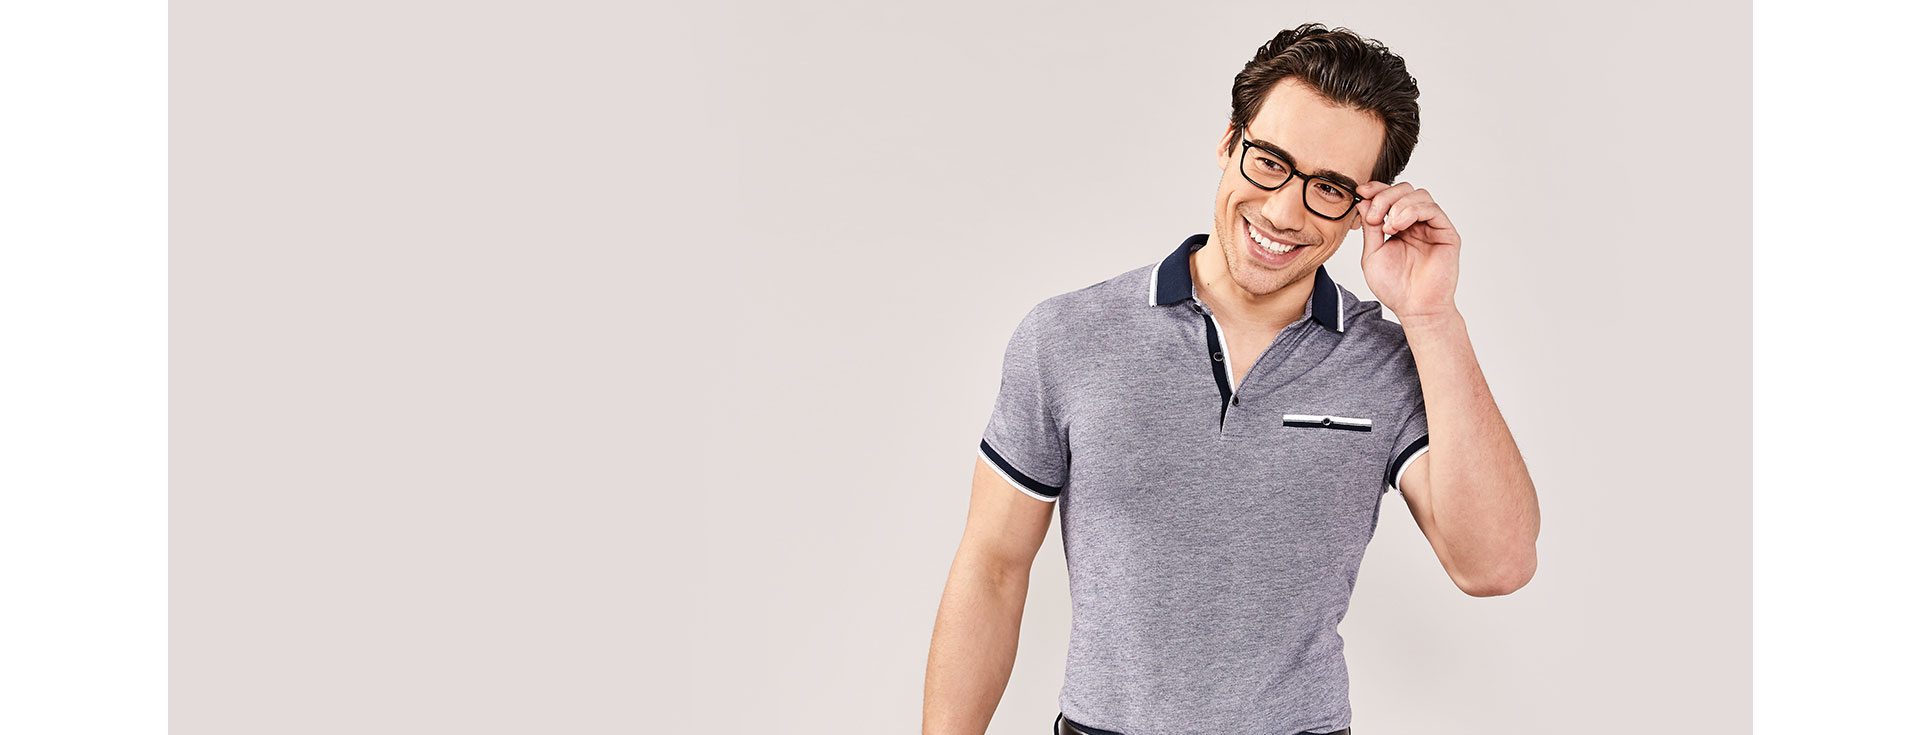 man with polo